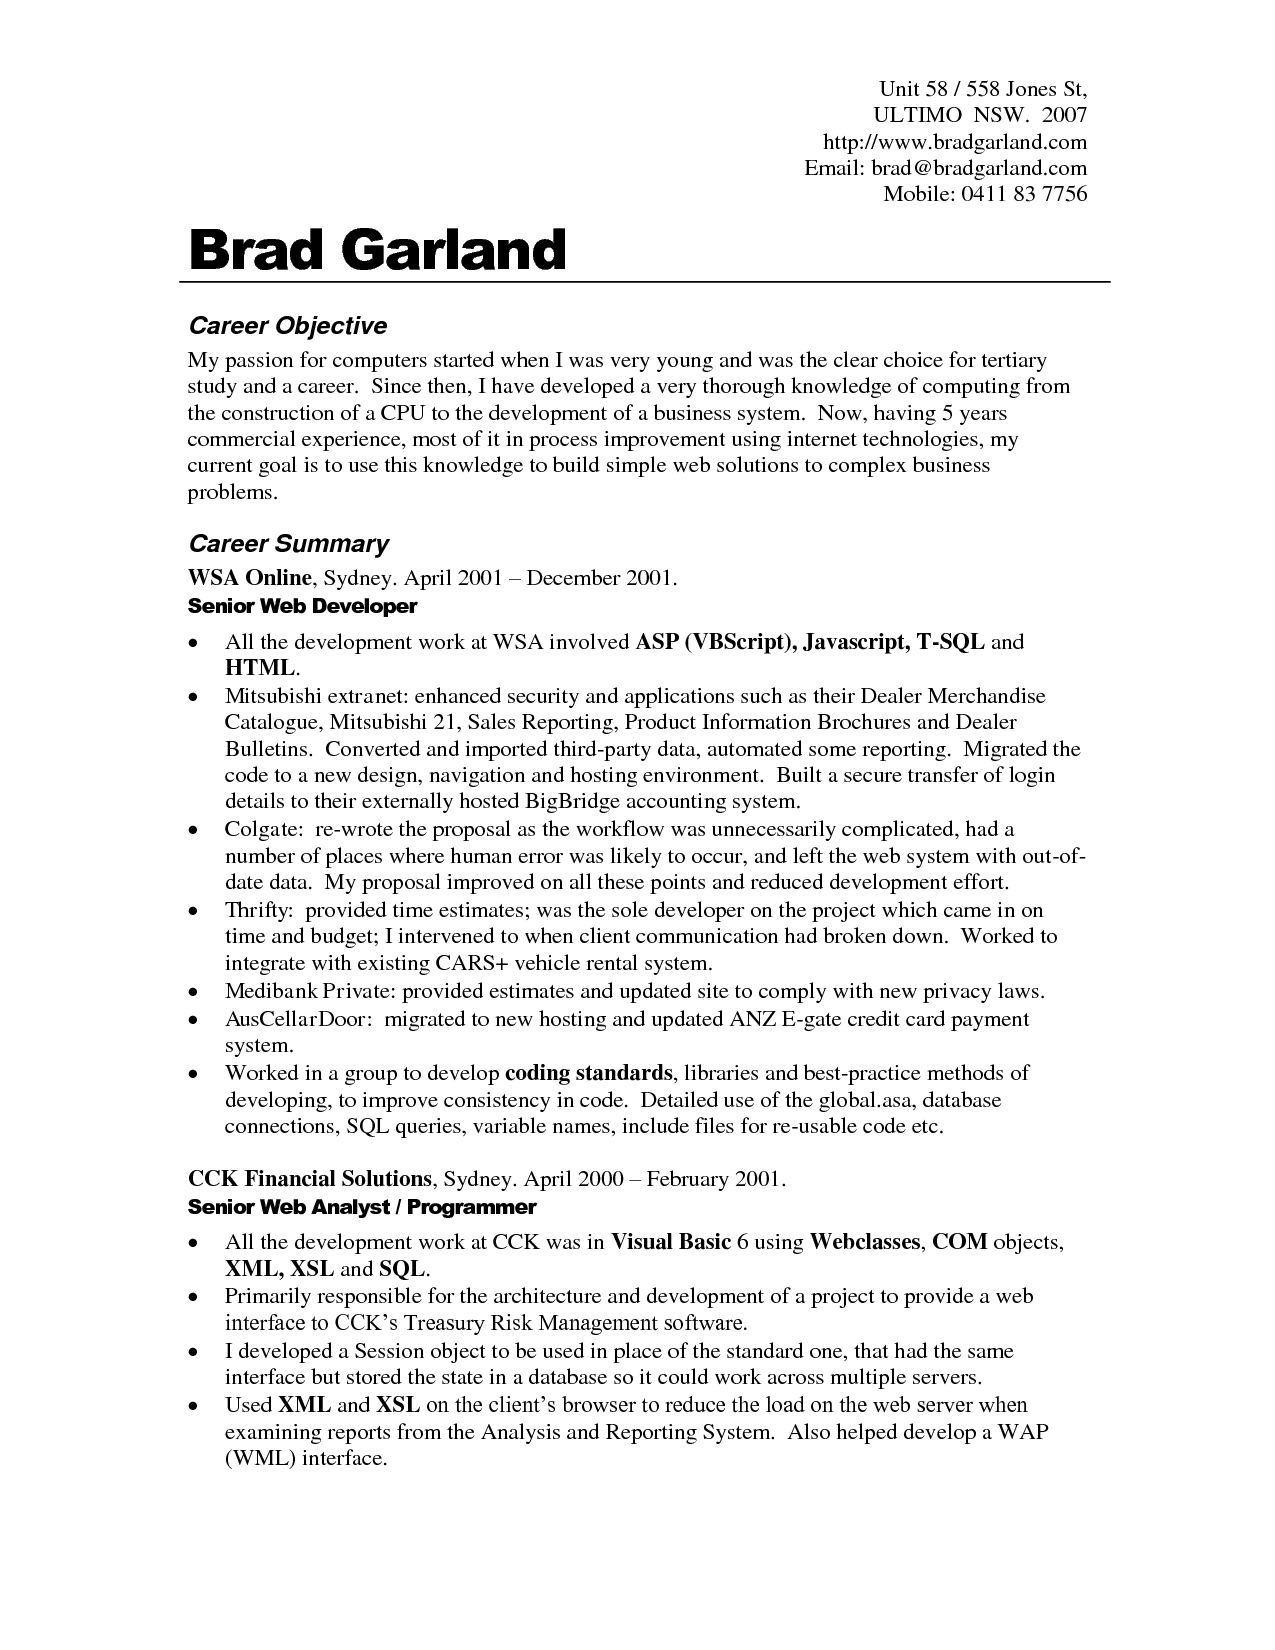 Objectives In Resume Sample Resume Action Verbs For Lawyers Formatting Back Post